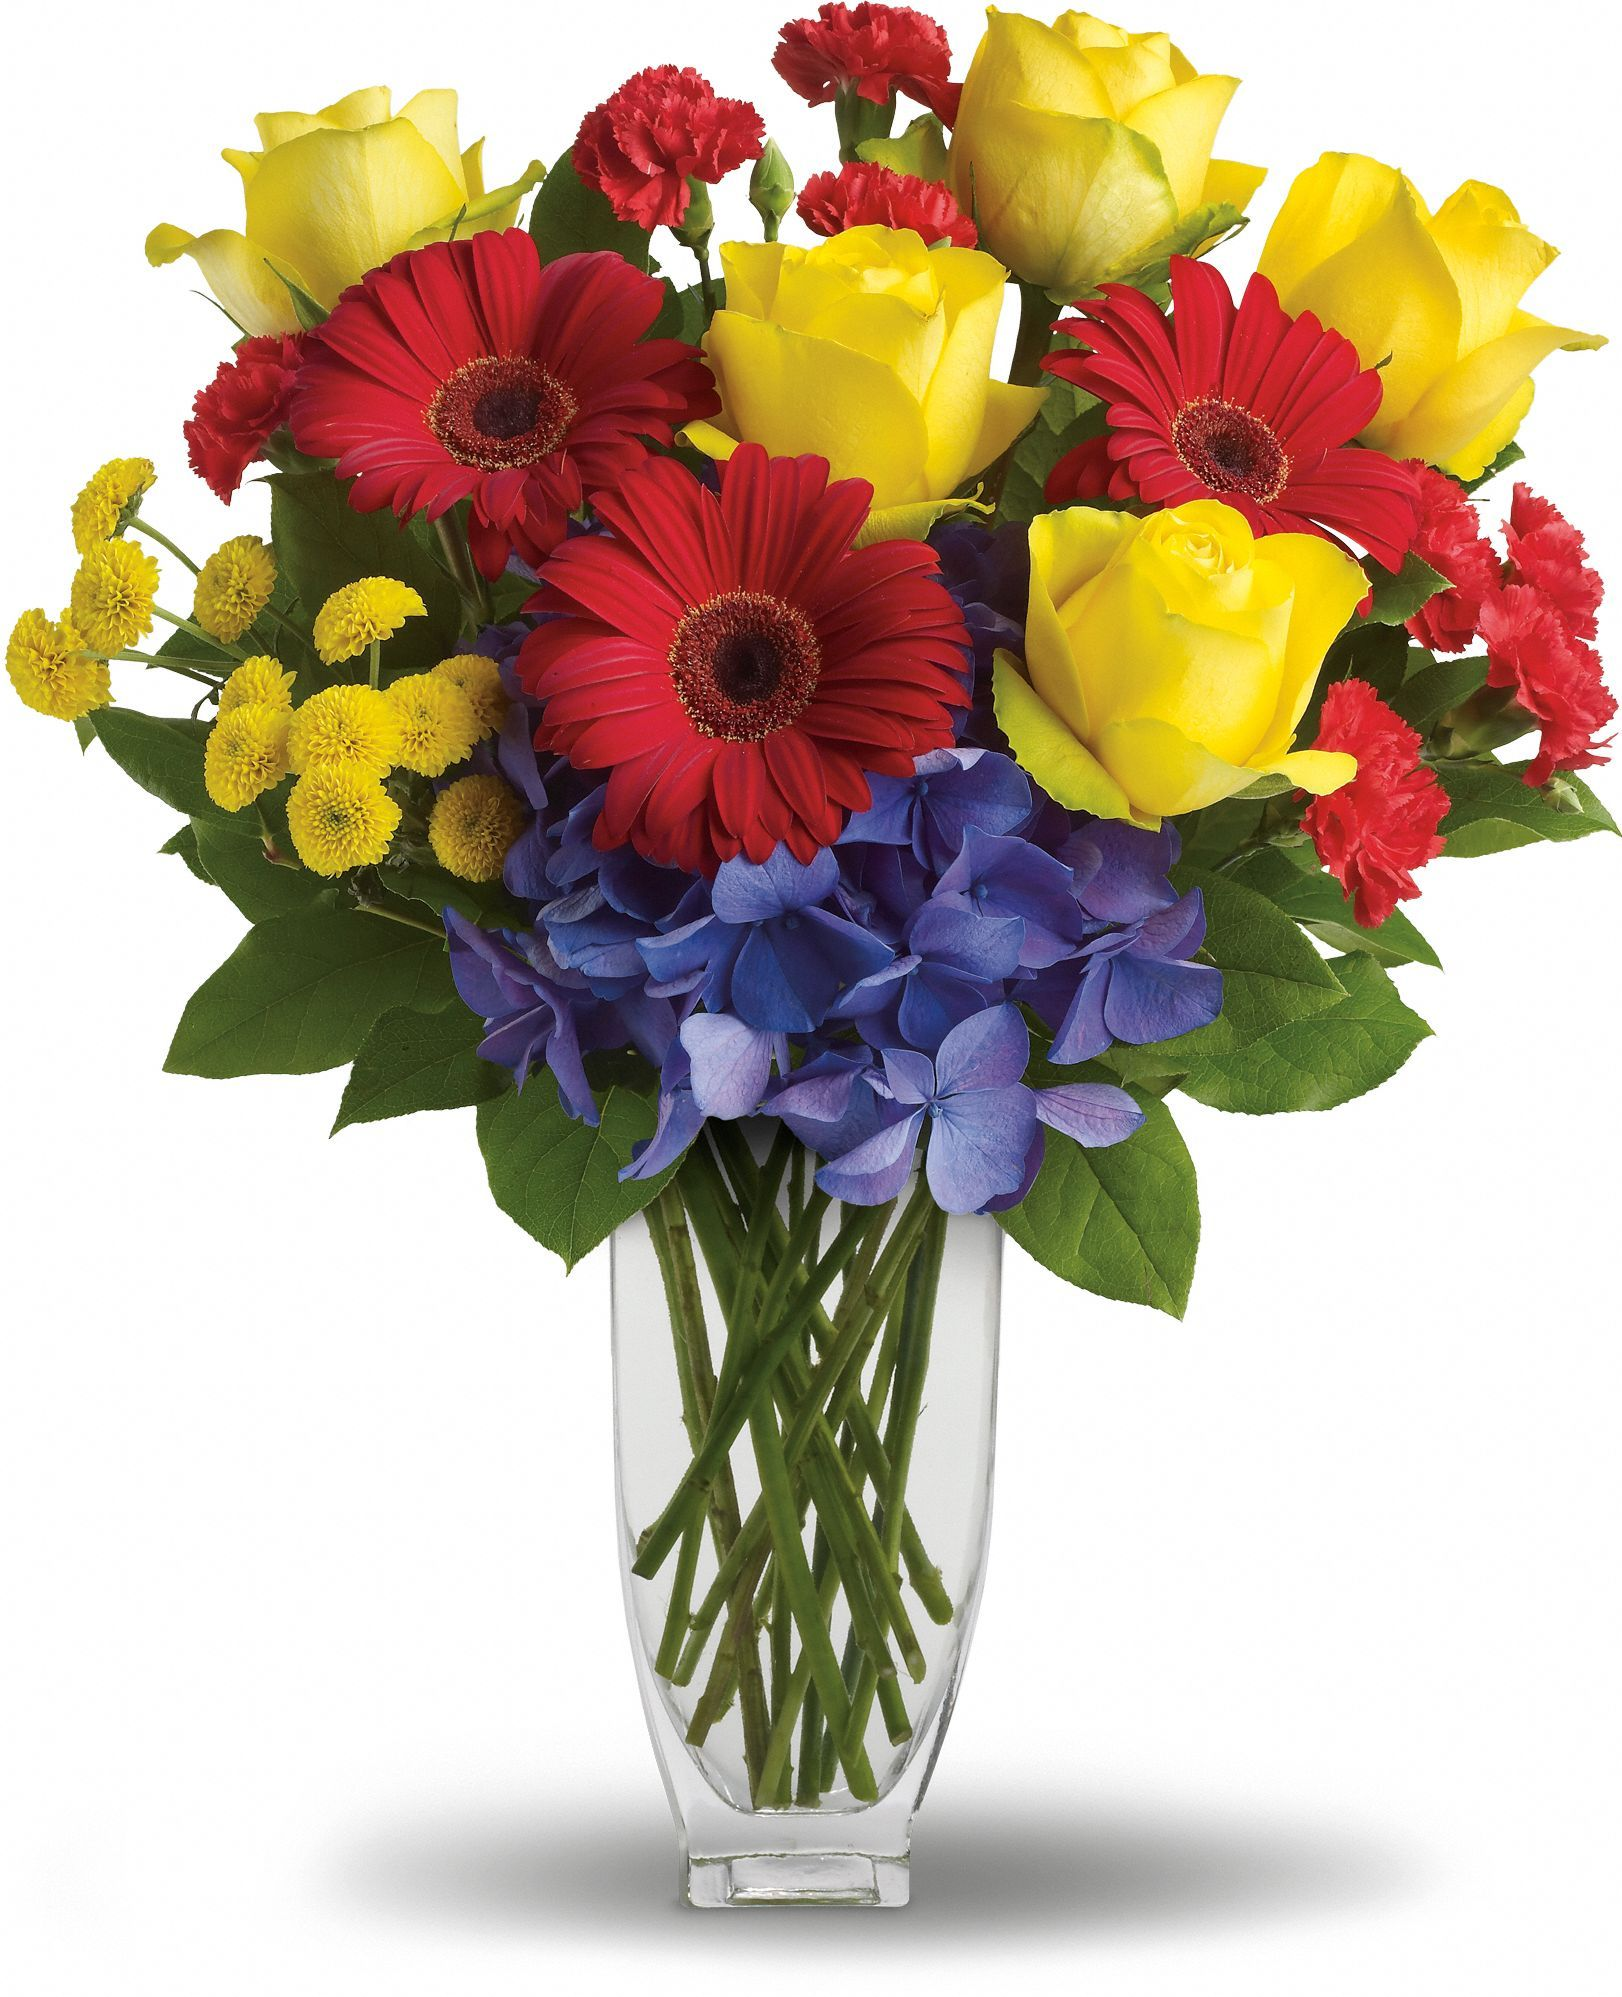 Heres to you by teleflora save 25 on this bouquet and many heres to you by teleflora save 25 on this bouquet and many others with coupon reviewsmspy